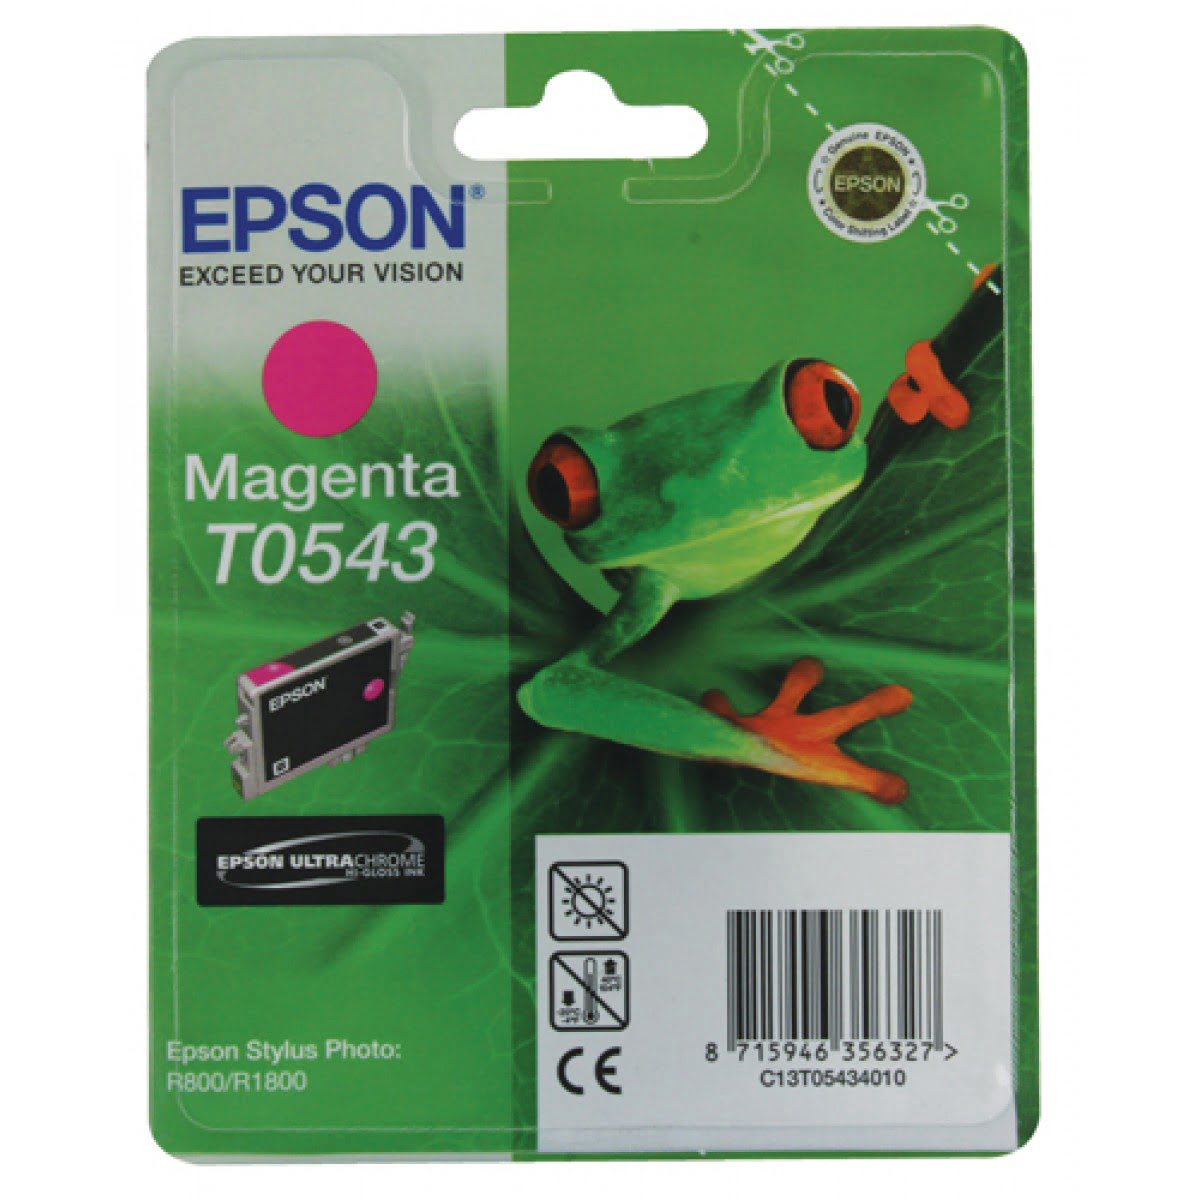 Consommable imprimante Epson Cartouche T0543 Stylus R800 Magenta